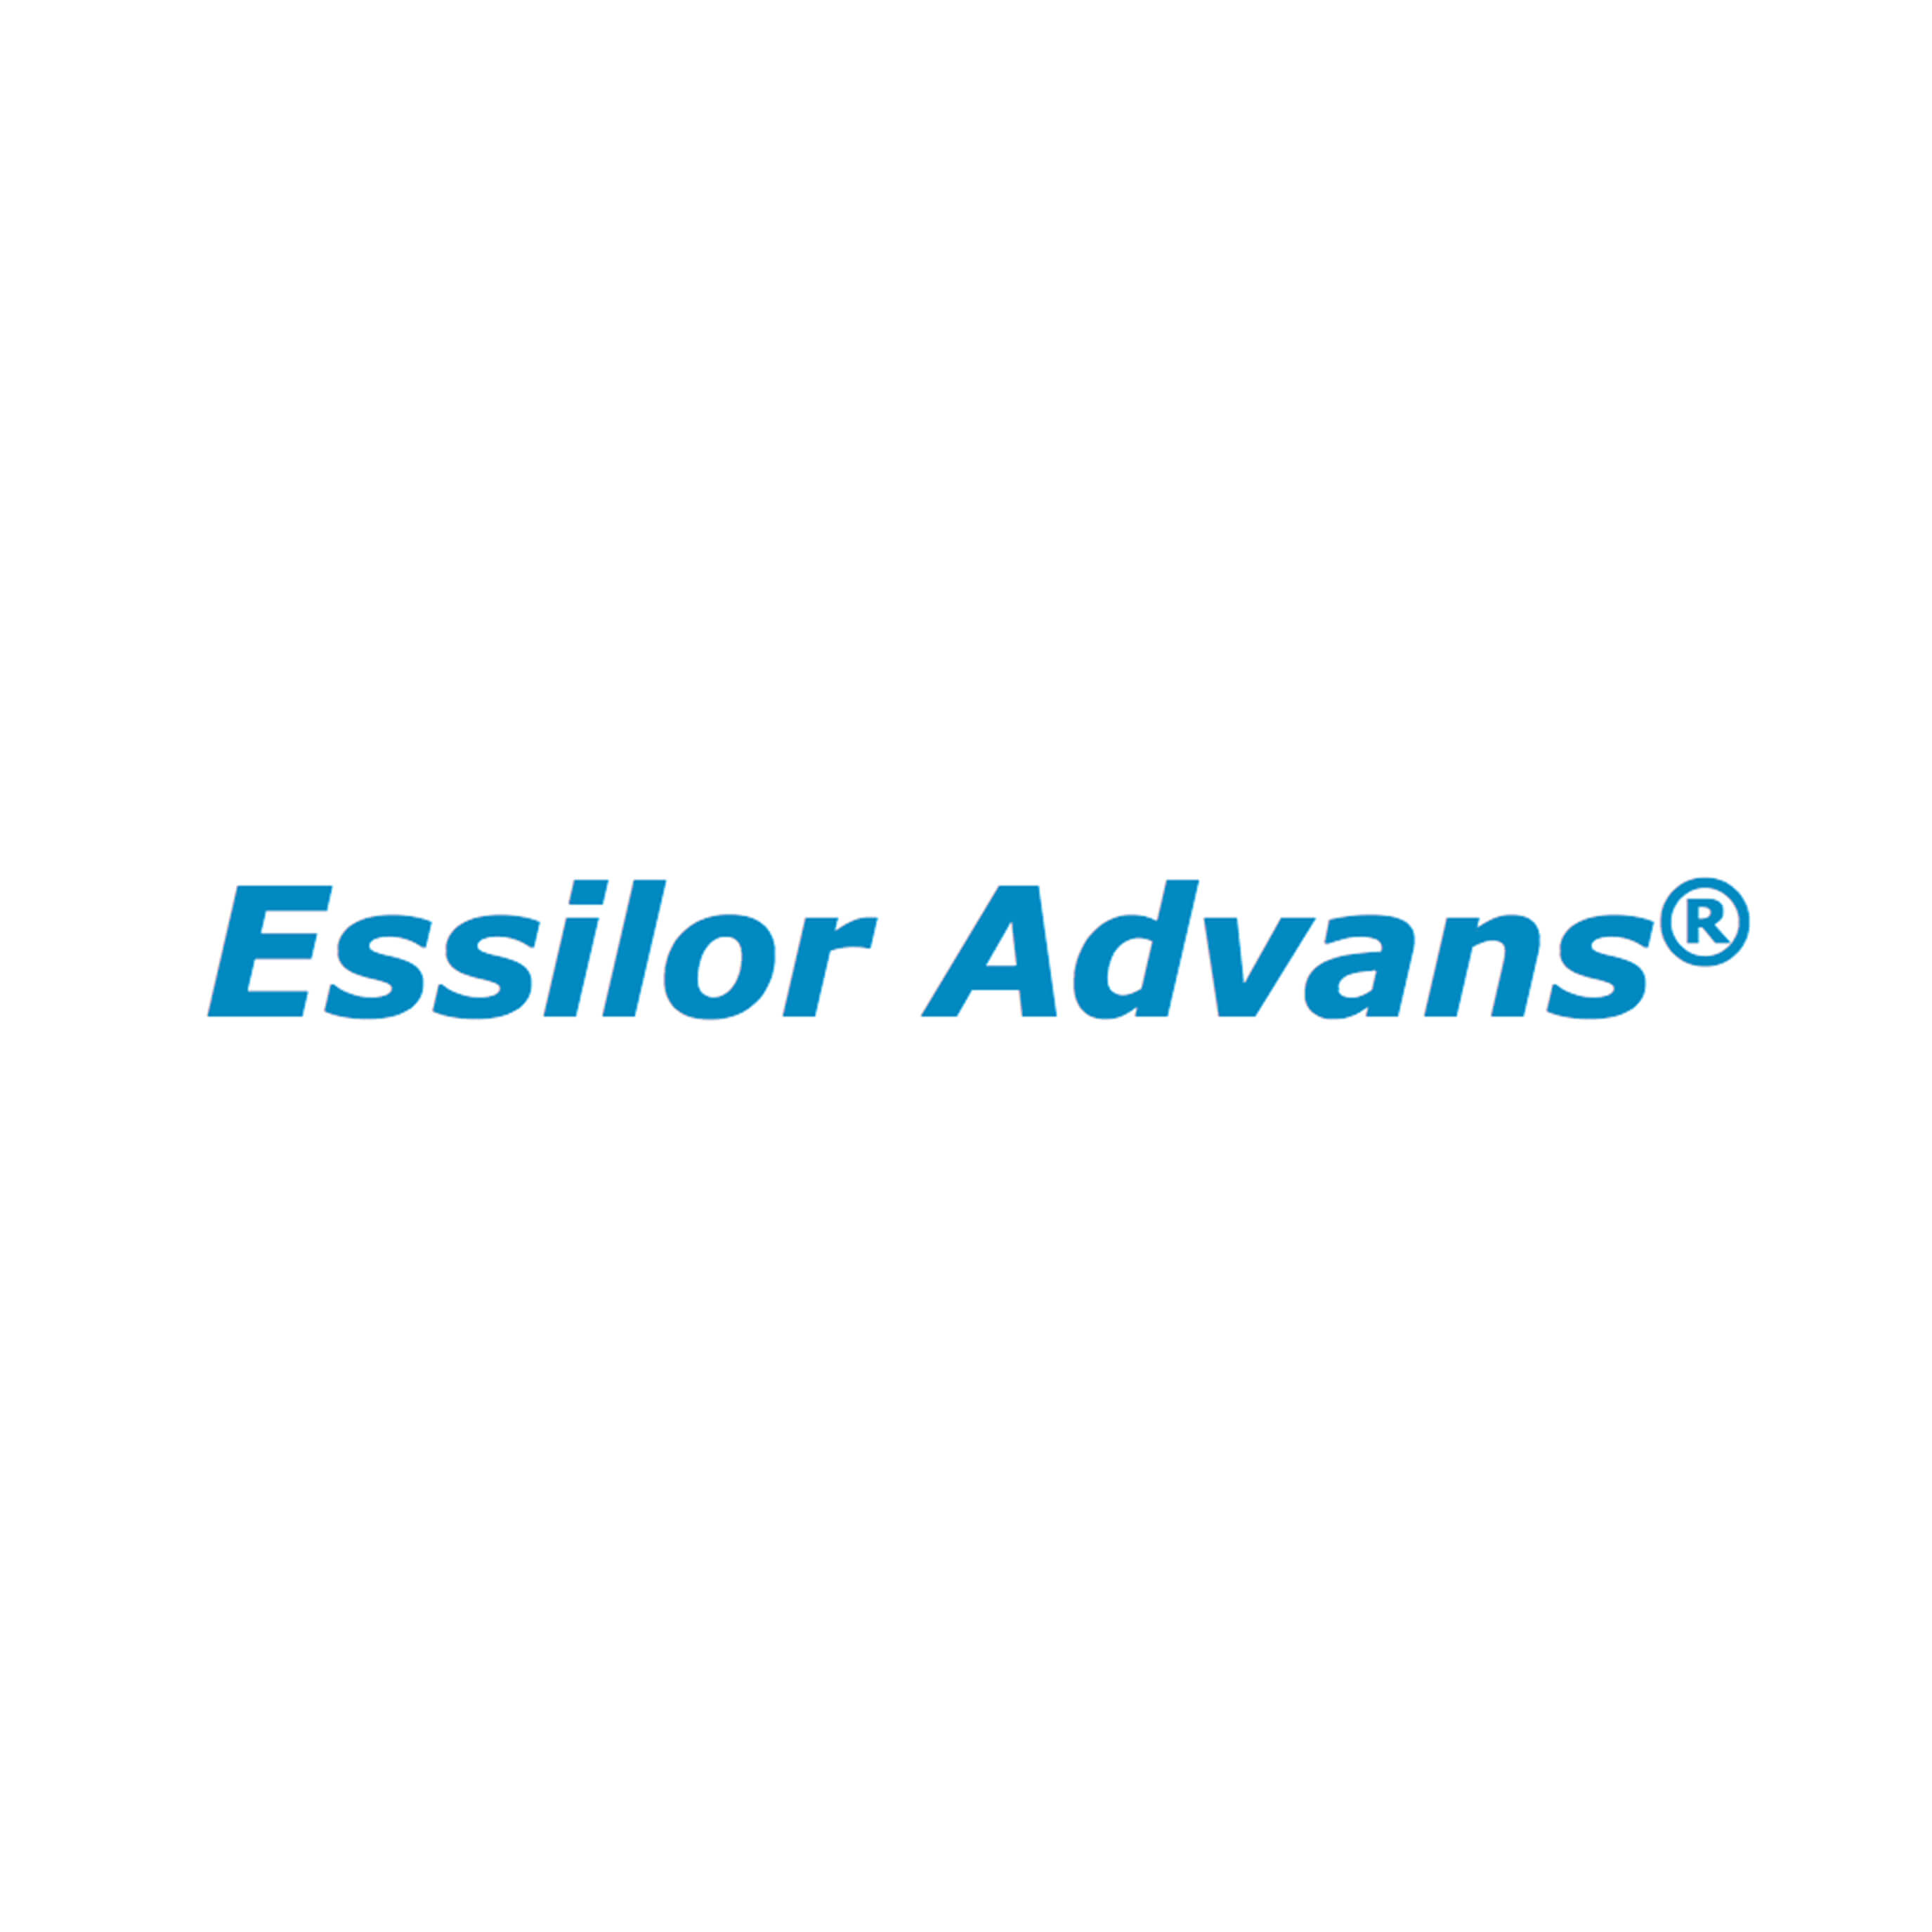 Essilor Advans